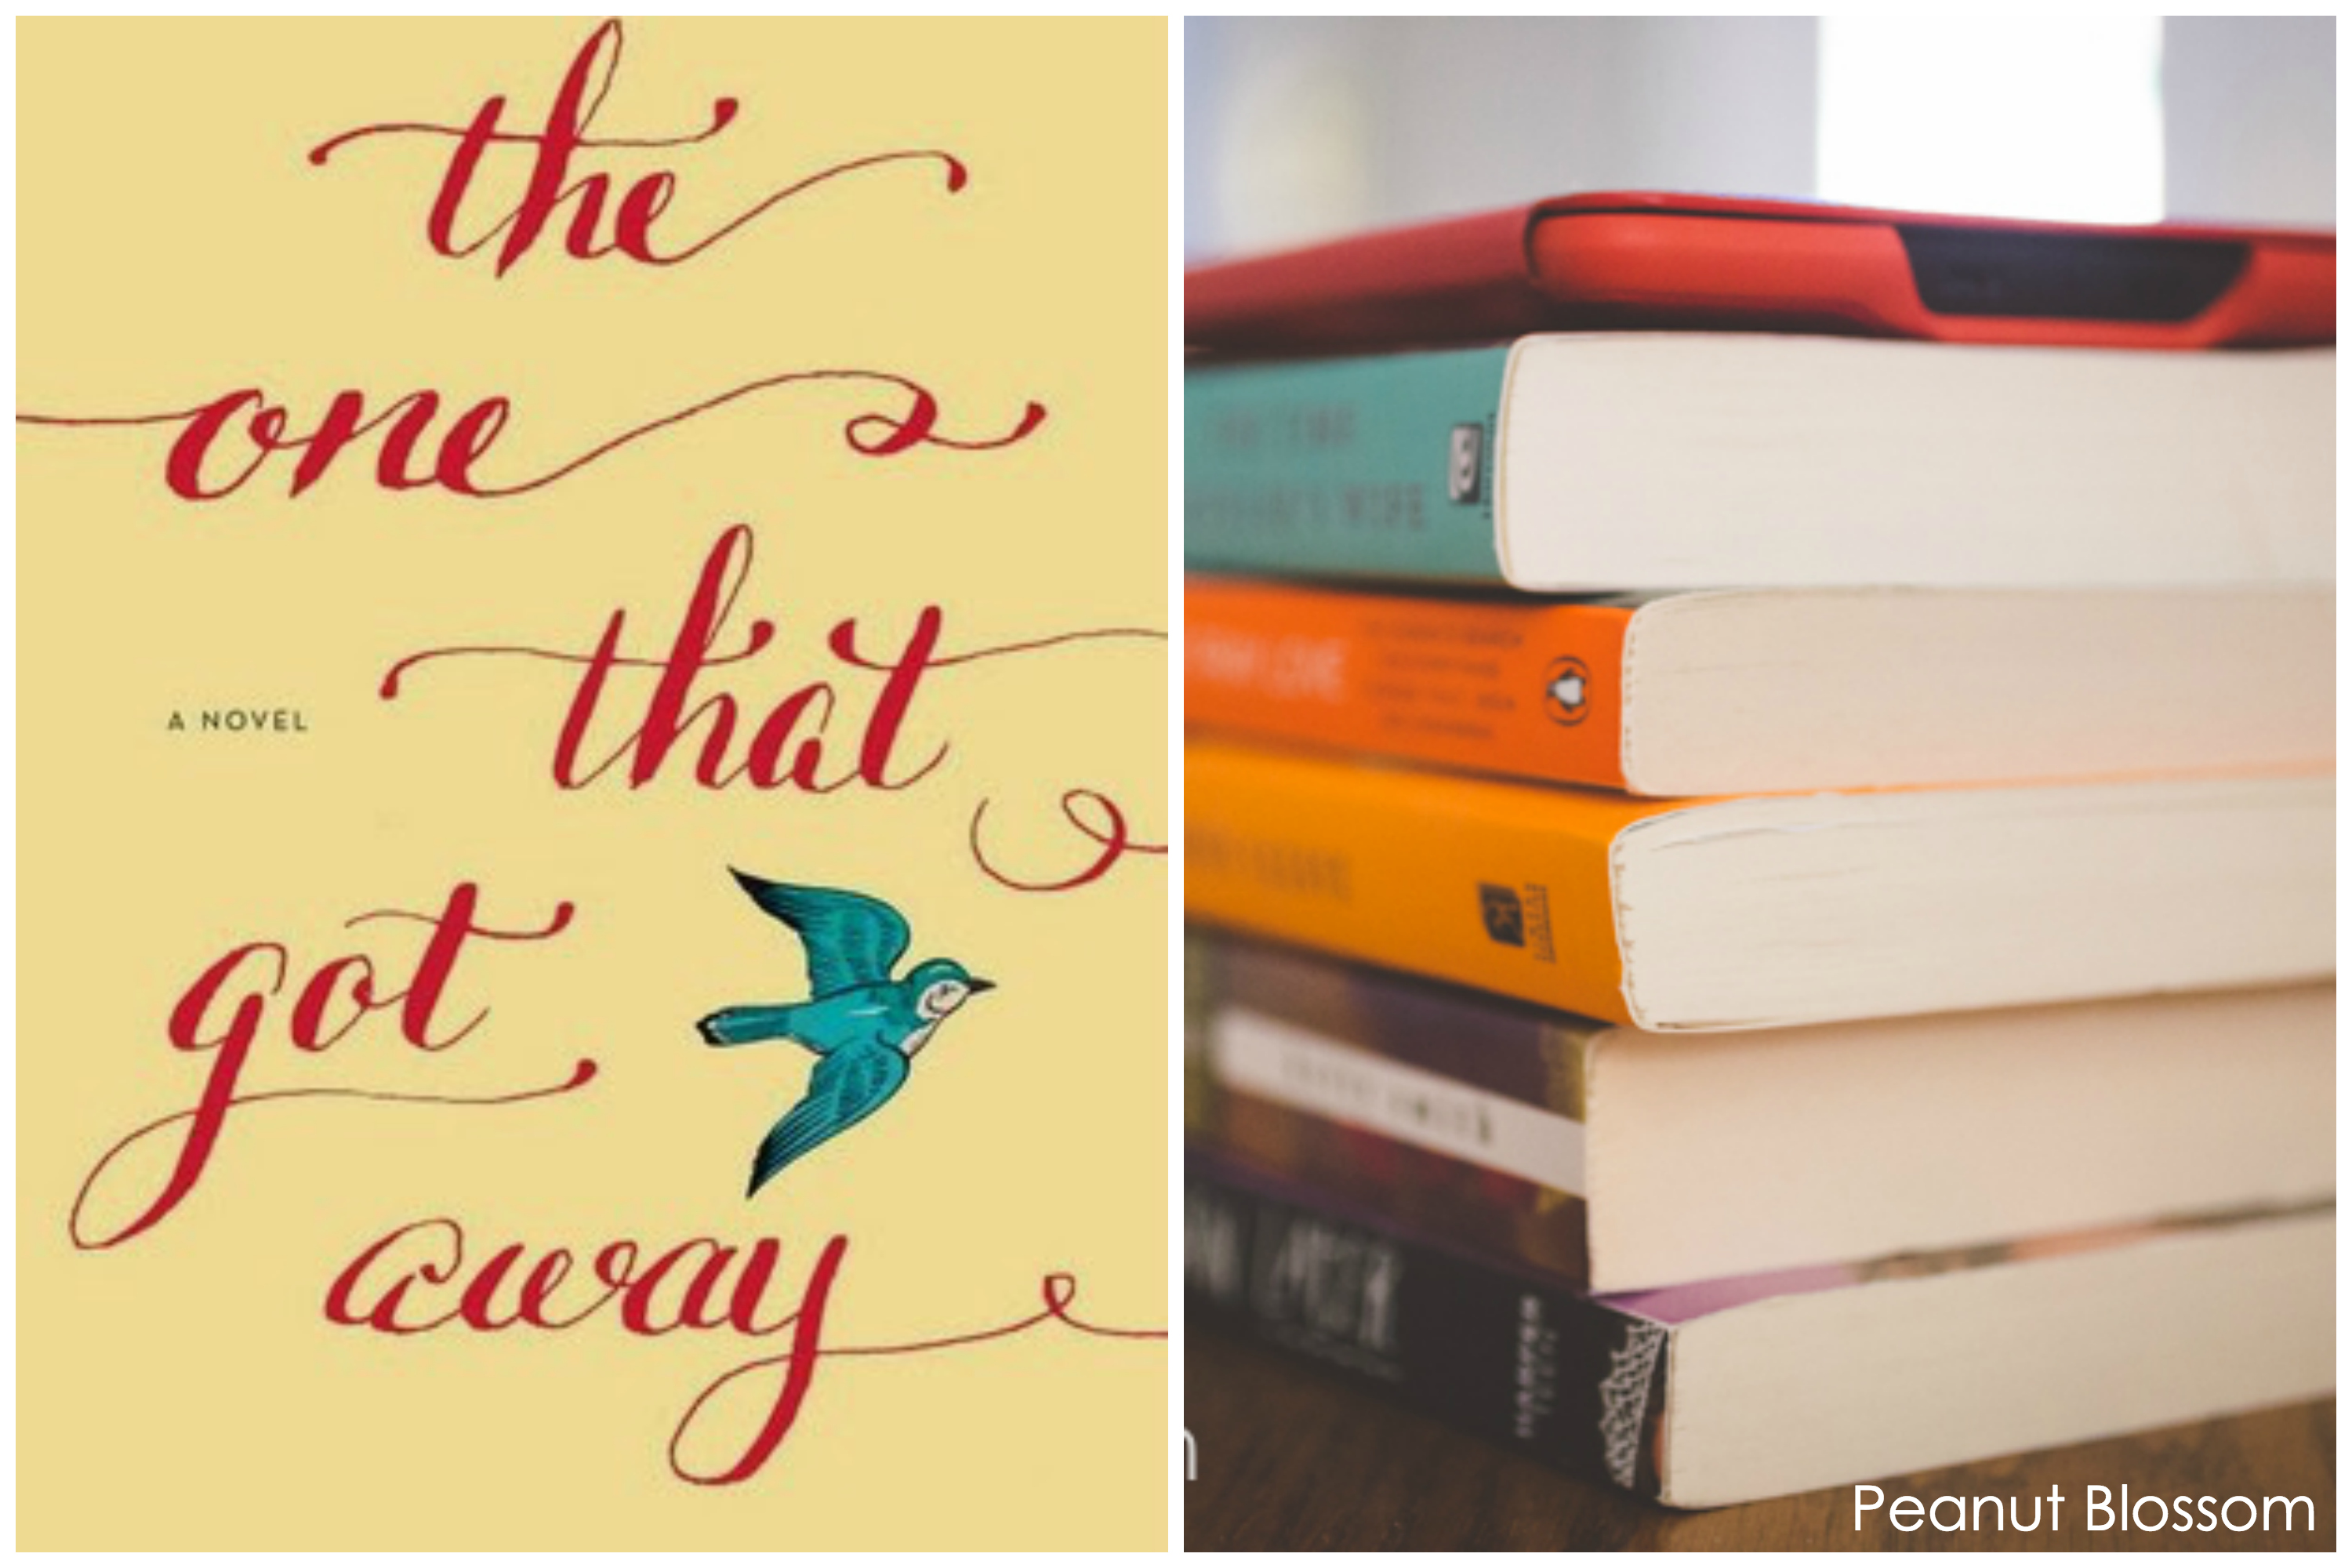 Book club discussion guide The One That Got Away by Bethany Chase